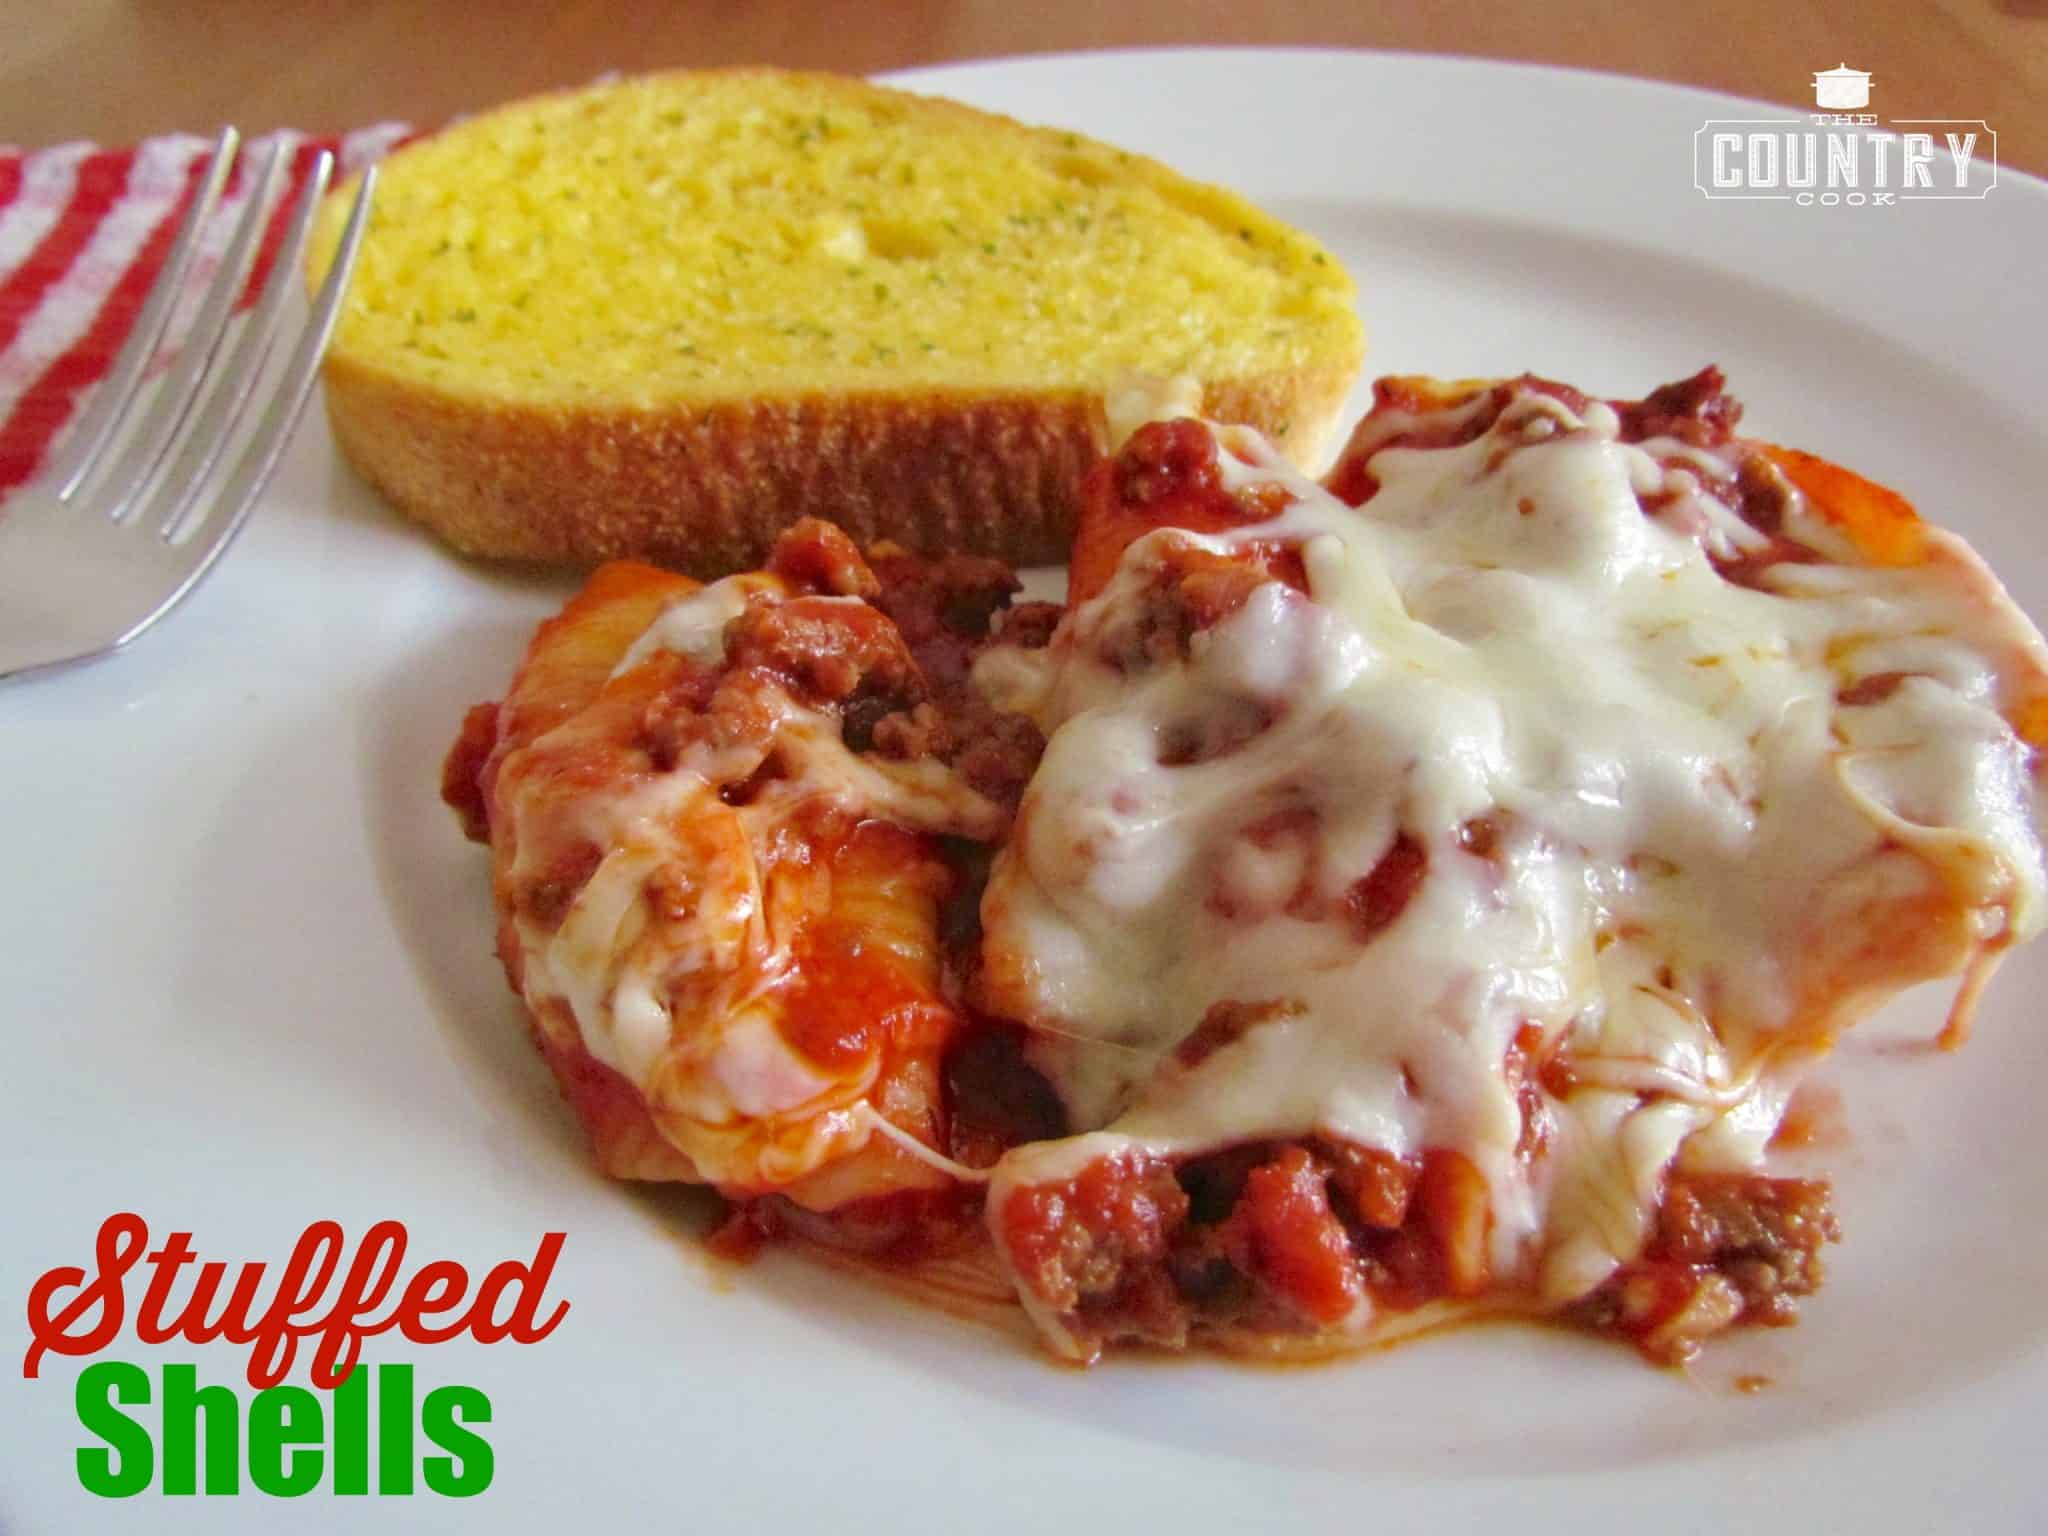 Stuffed Shells - The Country Cook